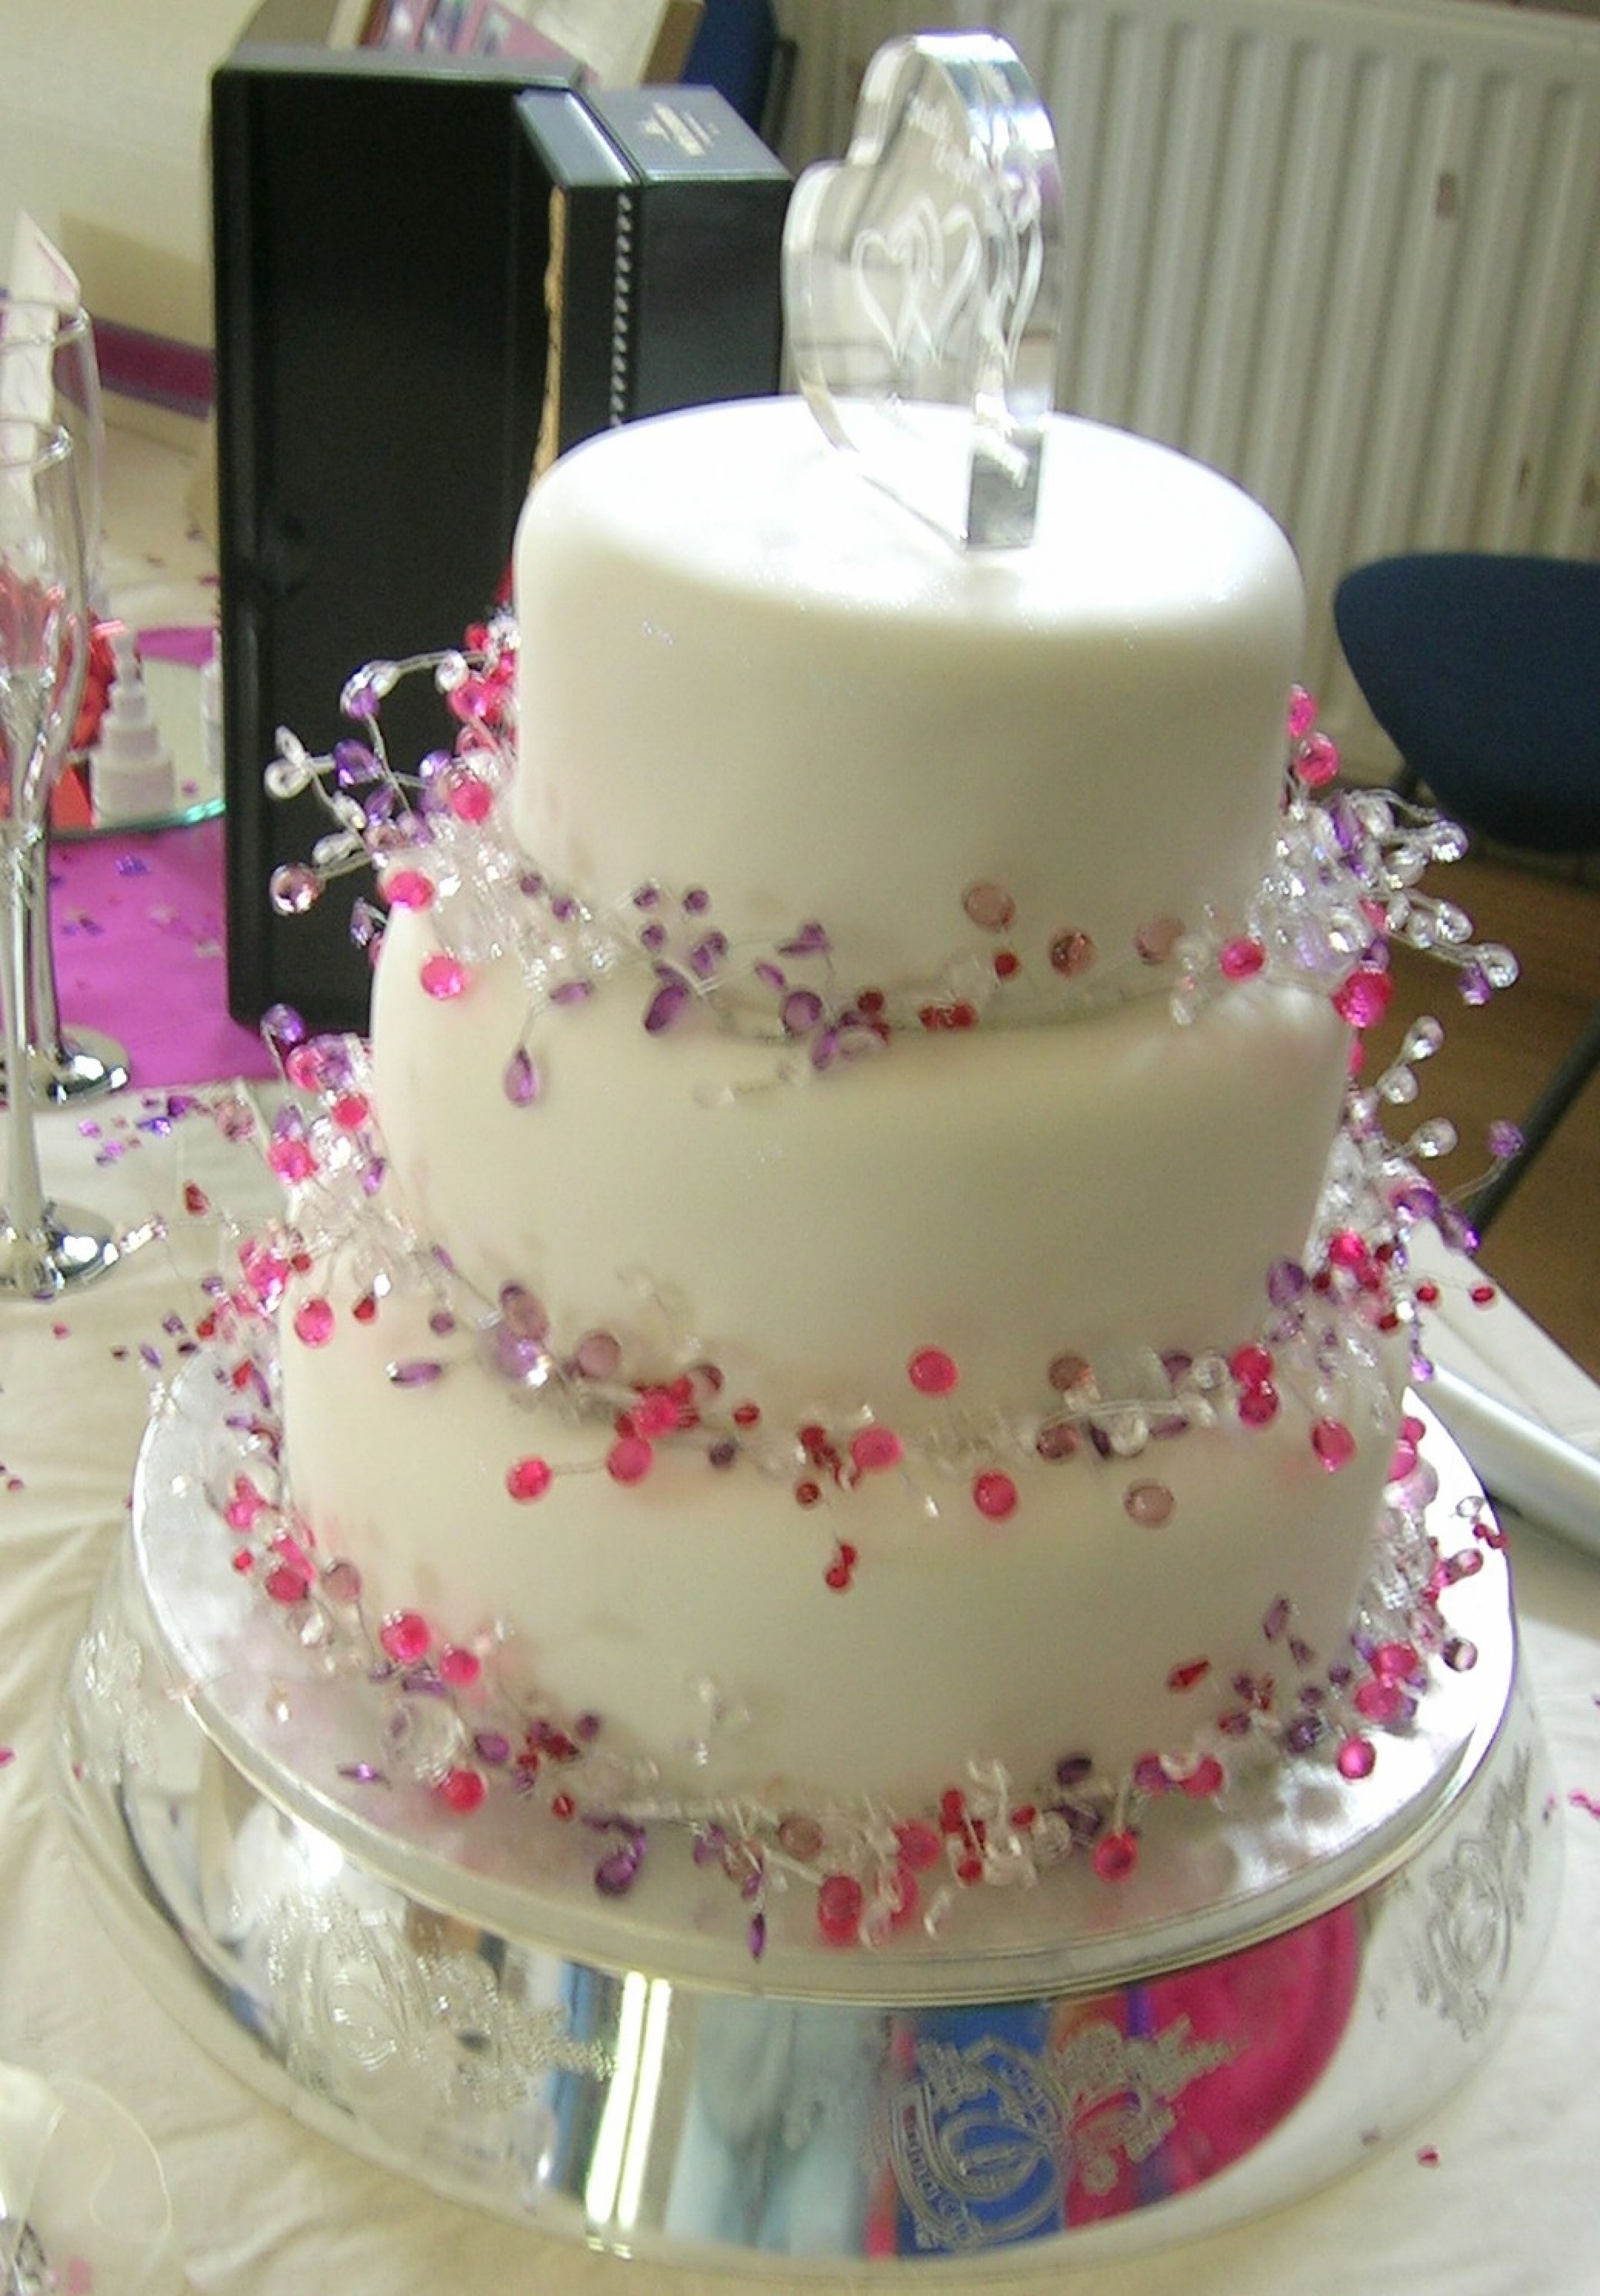 Cake designs ideas best paint for interior walls check more at